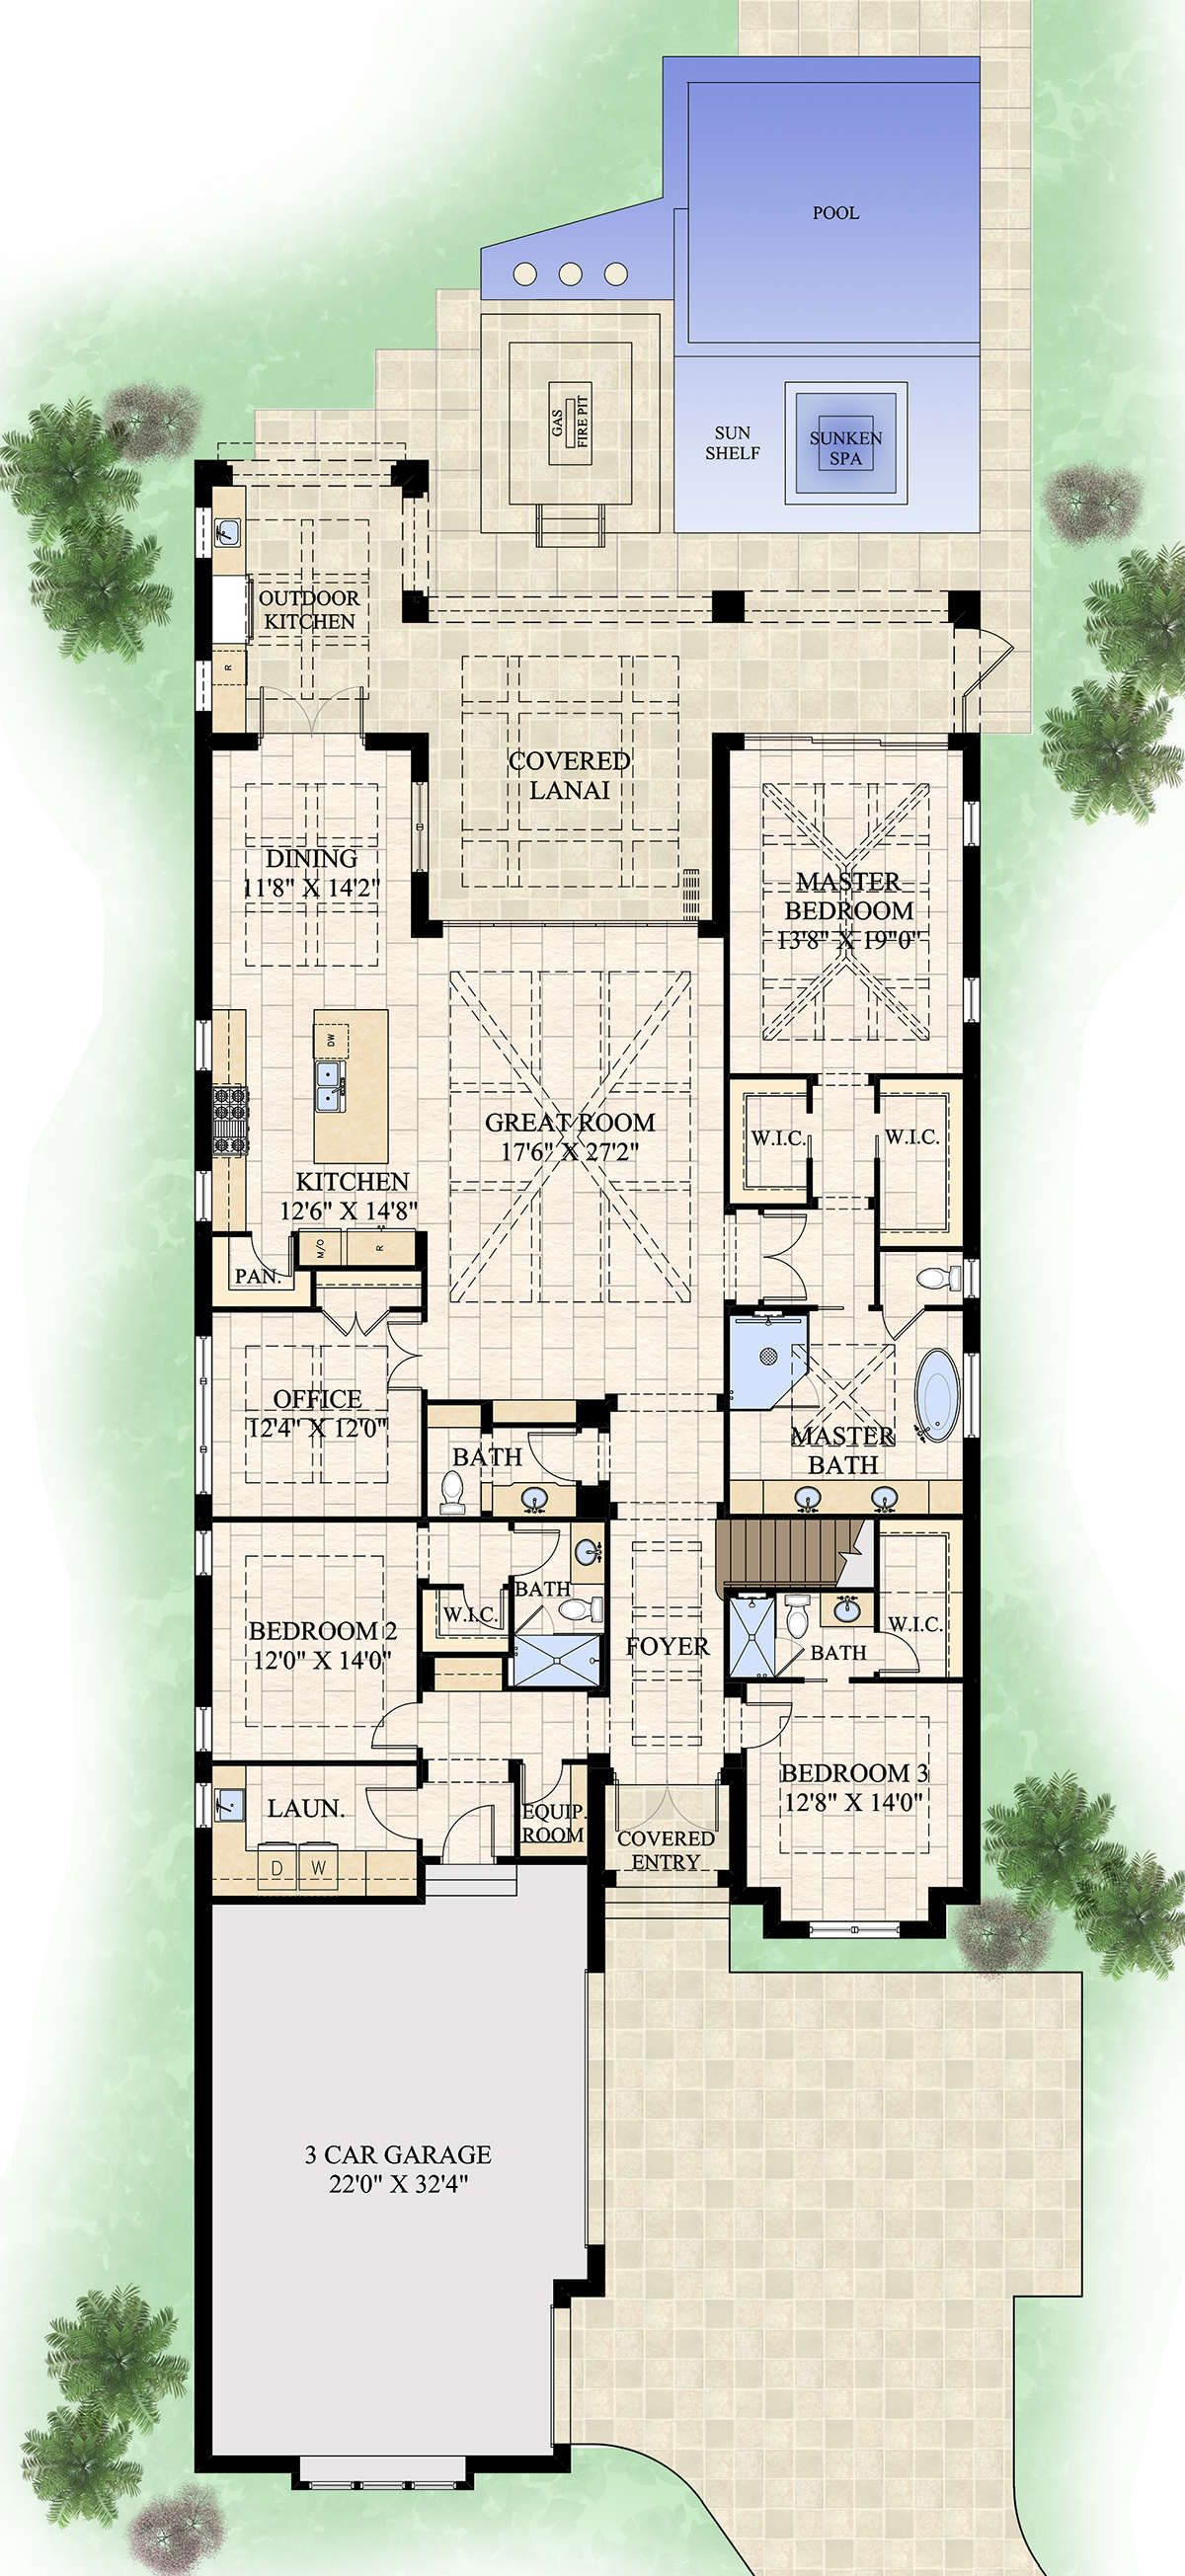 House Plan 748 00001 Florida Plan 3 996 Square Feet 5 Bedrooms 5 5 Bathrooms In 2020 Florida House Plans House Floor Plans House Plans